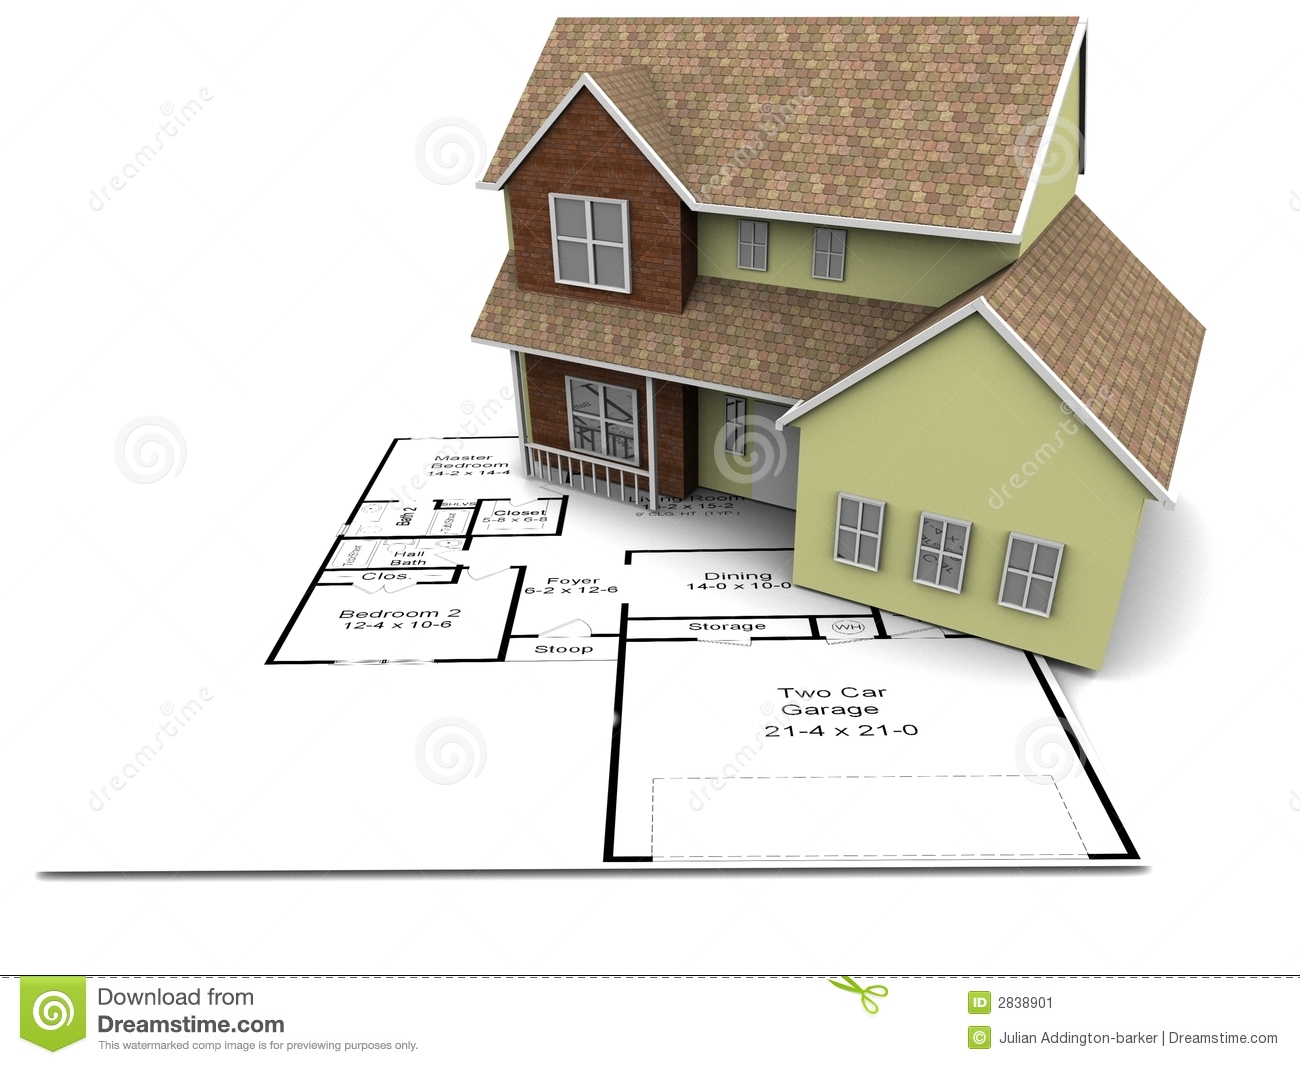 New house plans stock illustration illustration of house for New house plan design